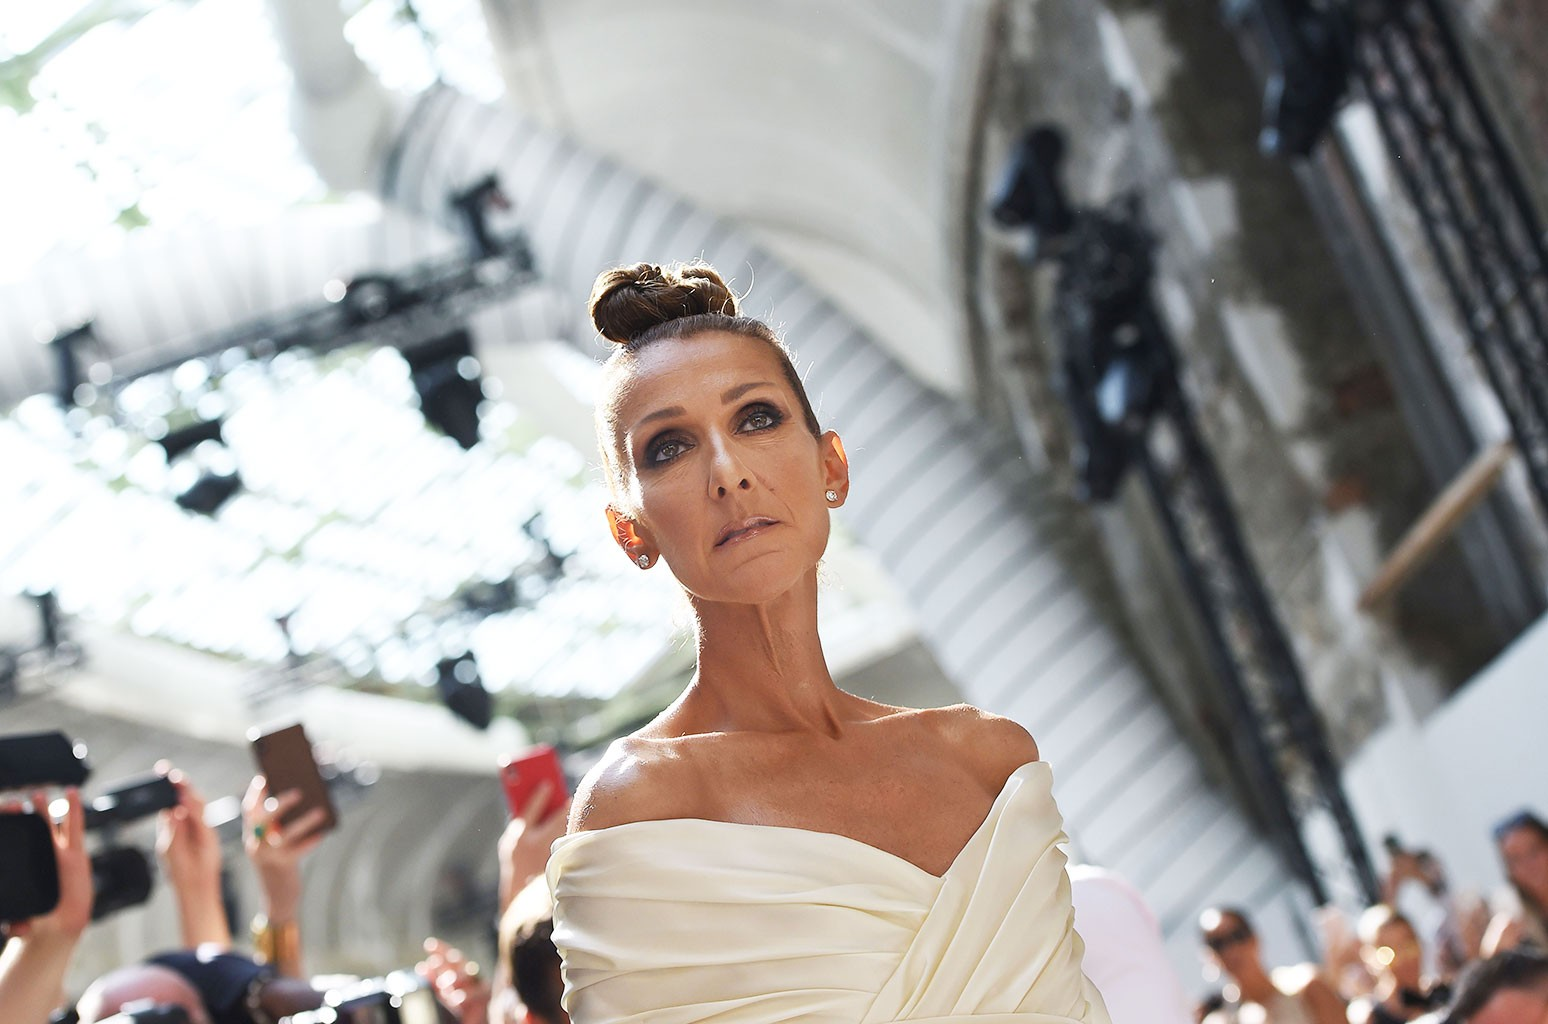 Celine Dion is fashioning a new life after tragedy